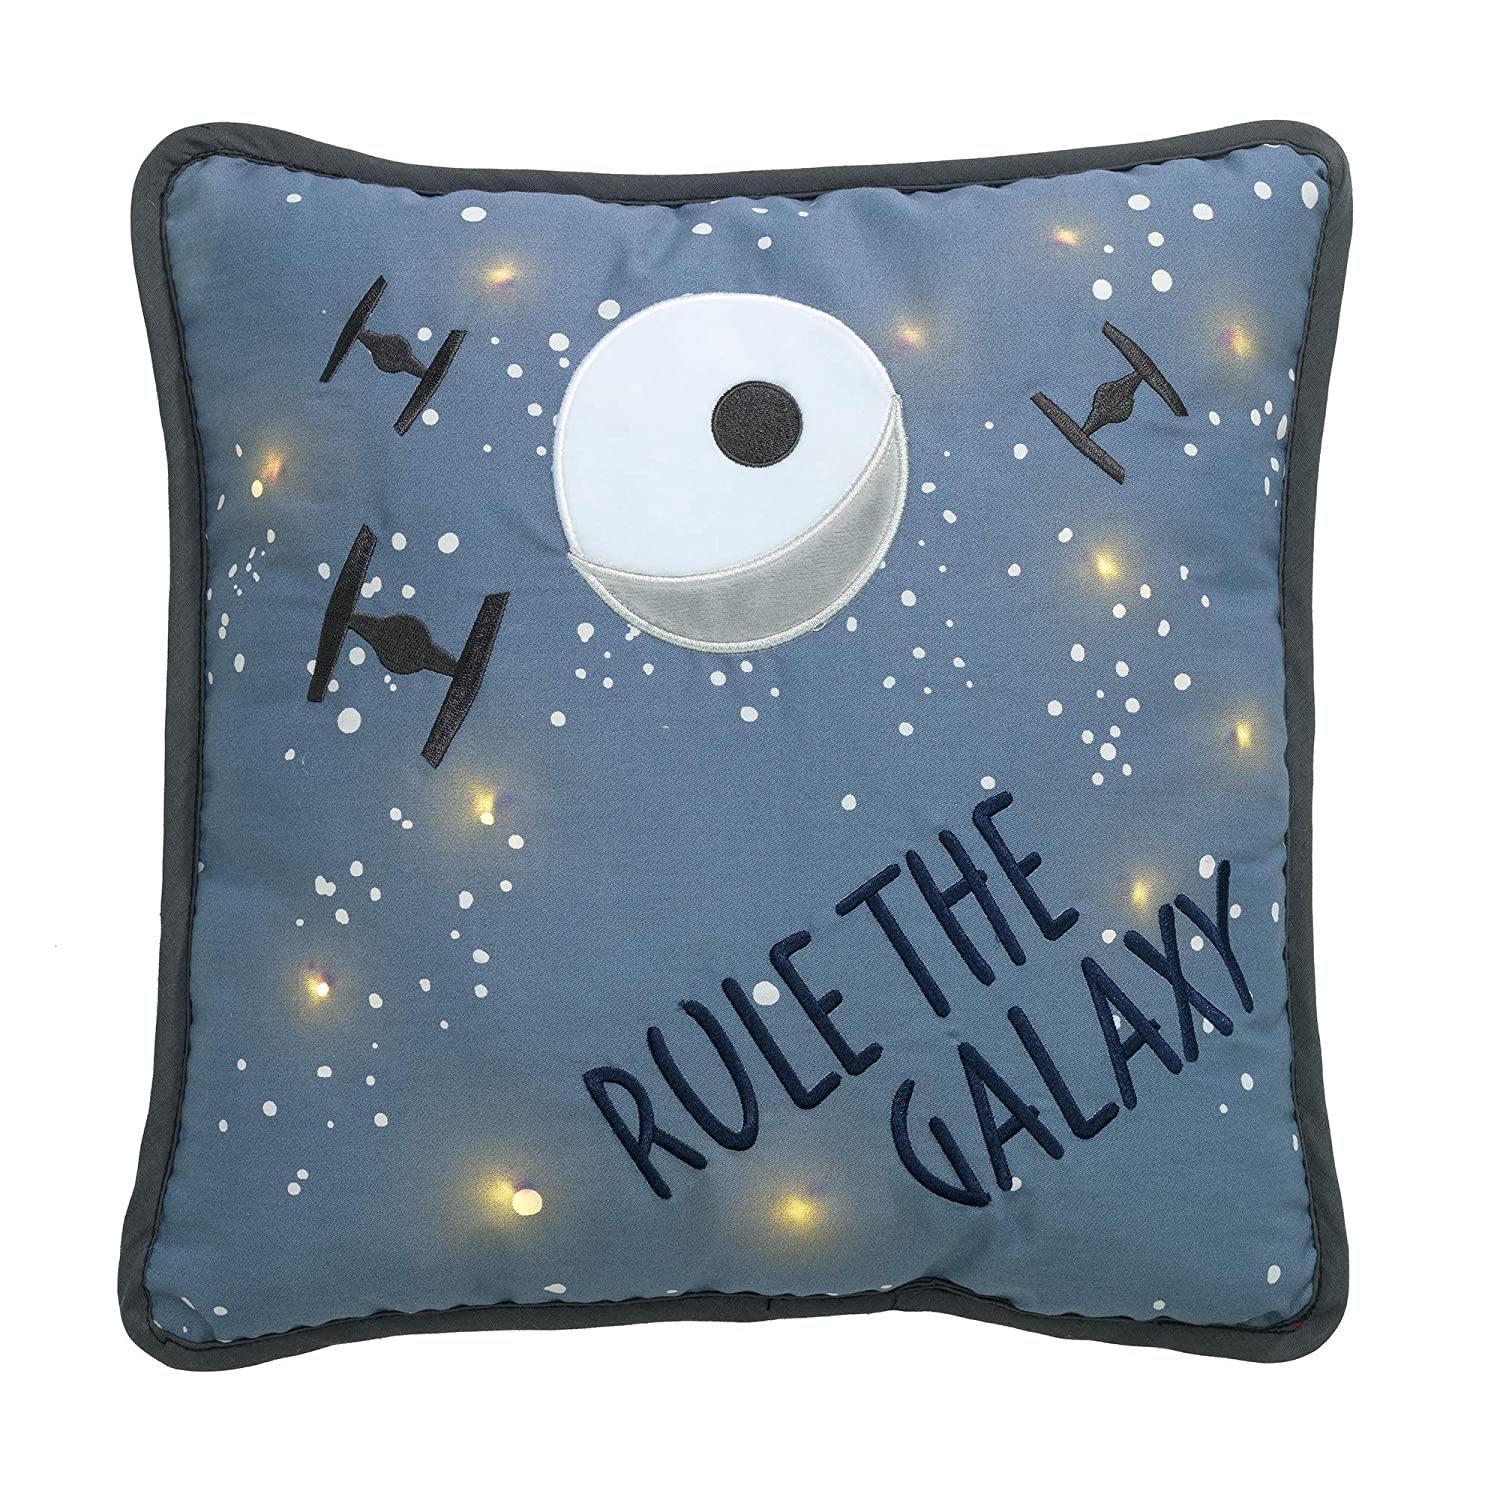 Lambs Ivy Star Max 51% OFF Wars Signature Decorative Galaxy Light-Up T Purchase LED